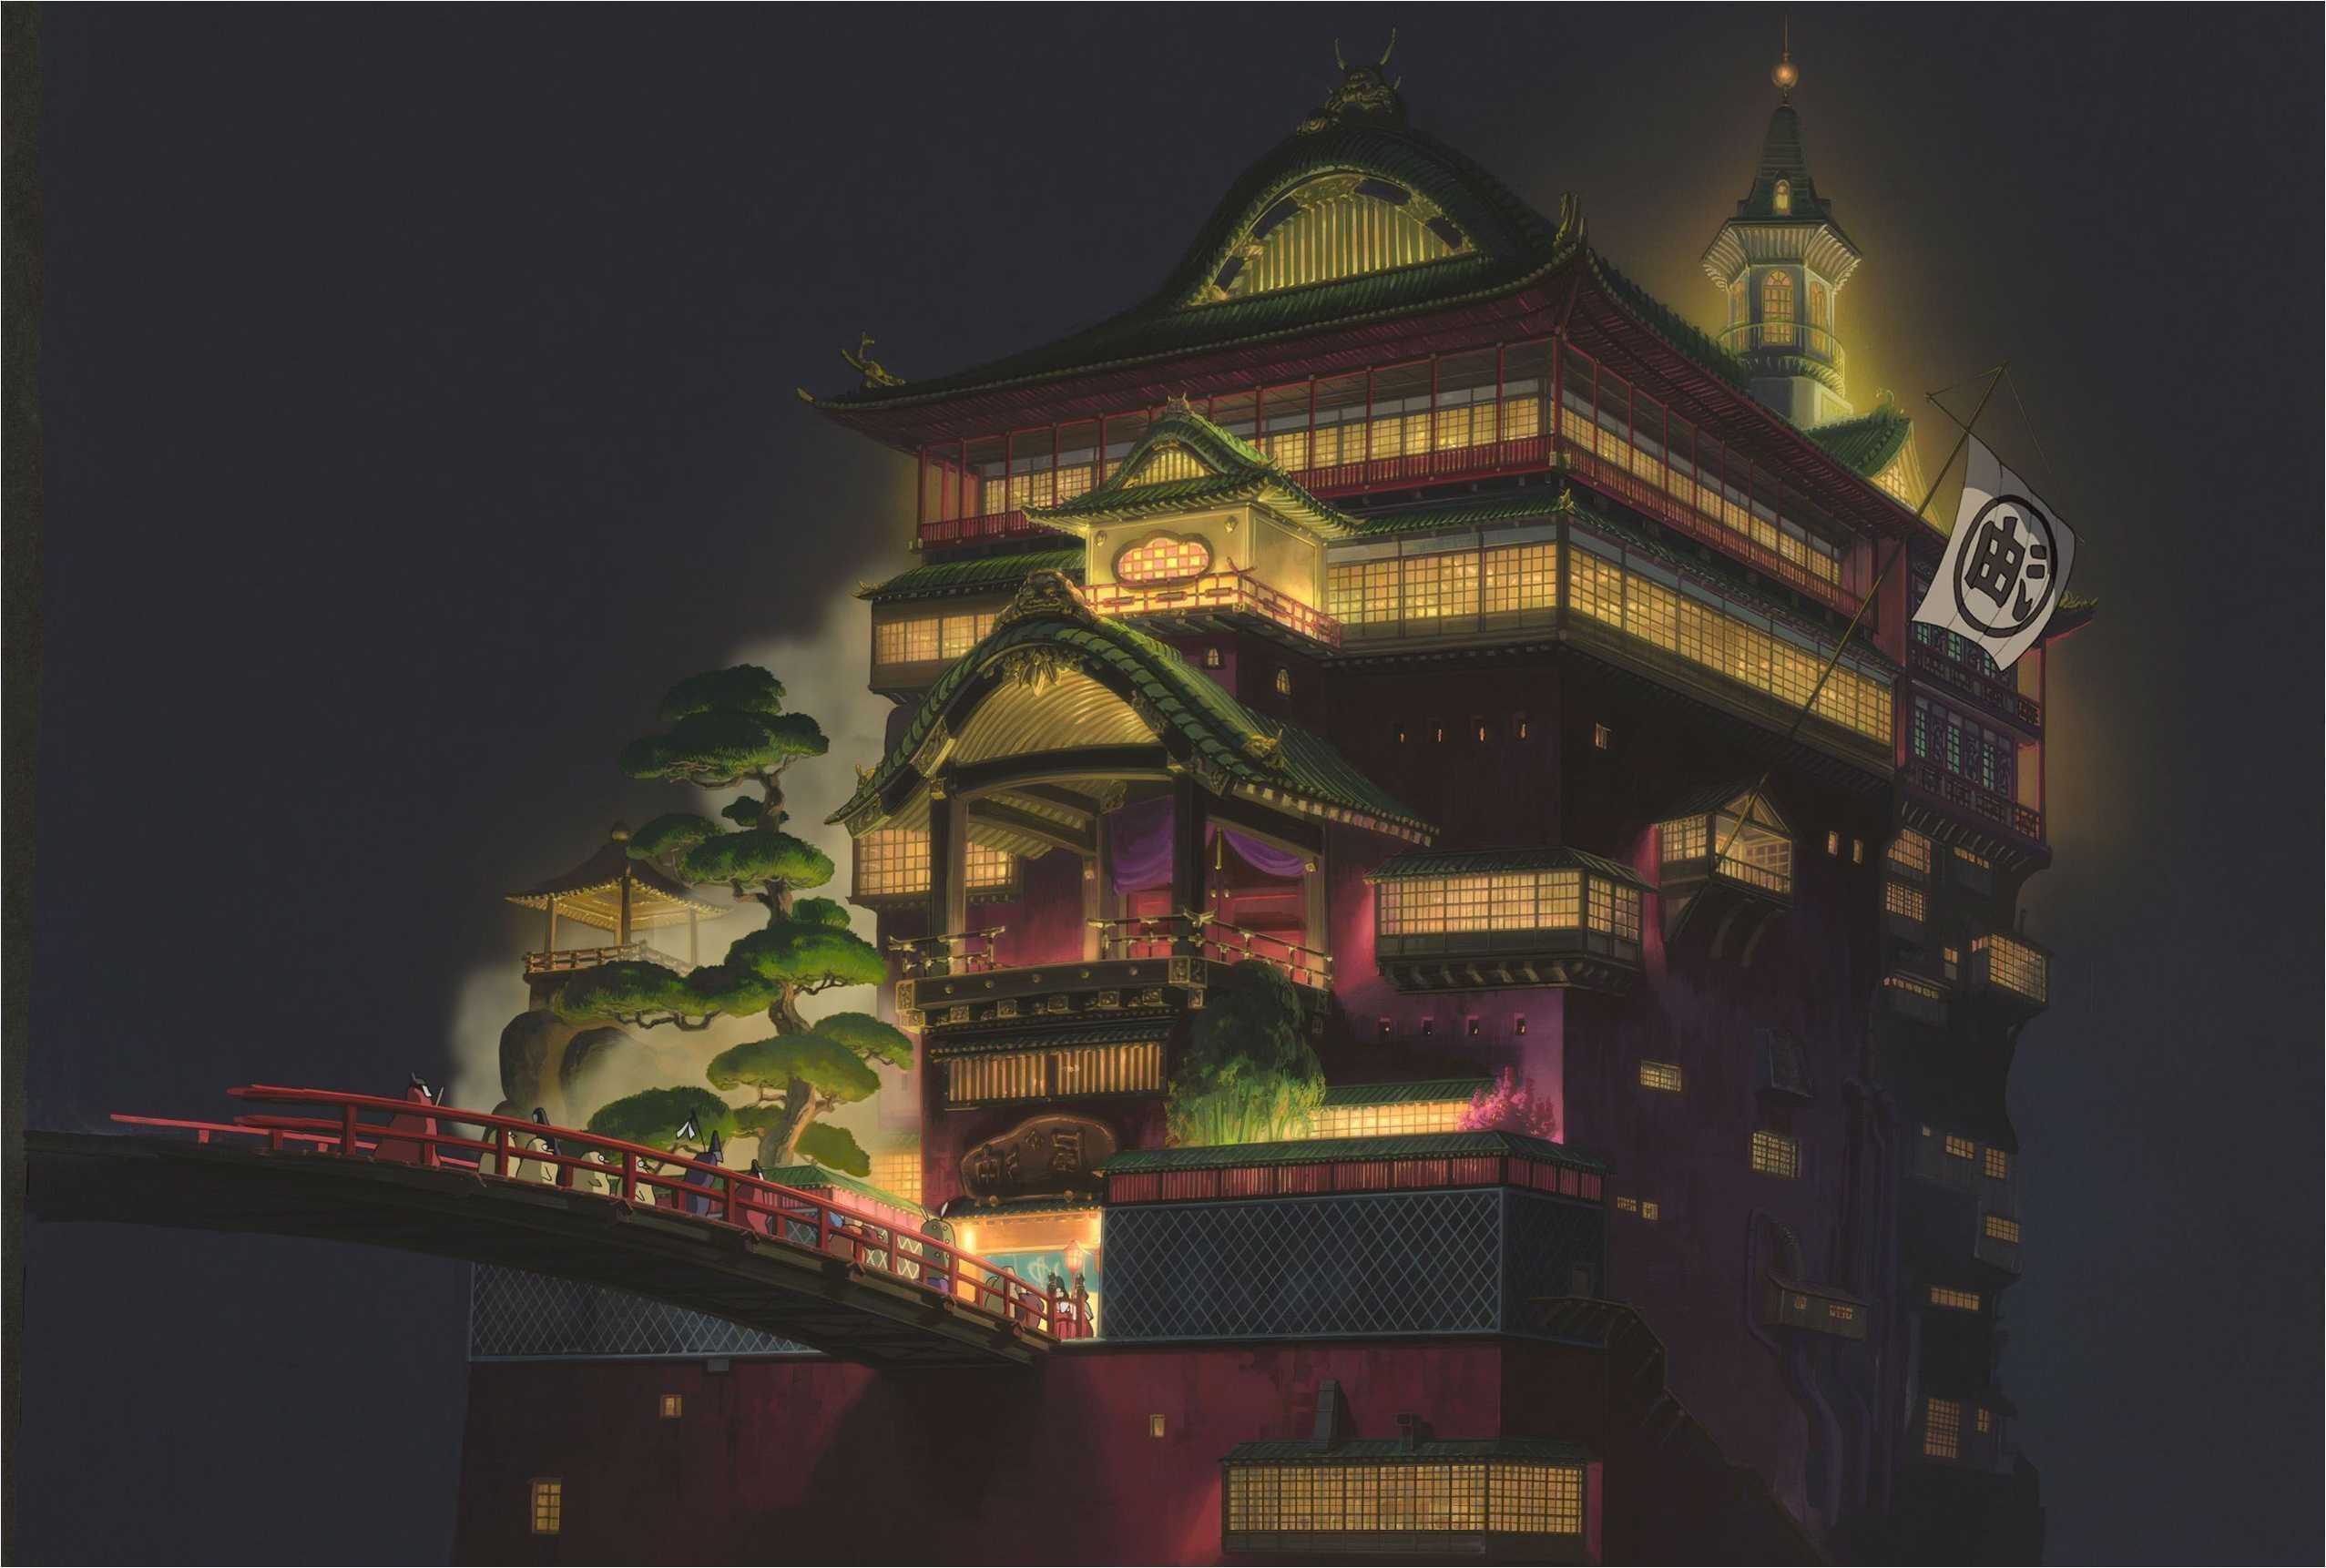 65 Spirited Away Wallpapers On Wallpaperplay Spirited Away Wallpaper Studio Ghibli Spirited Away